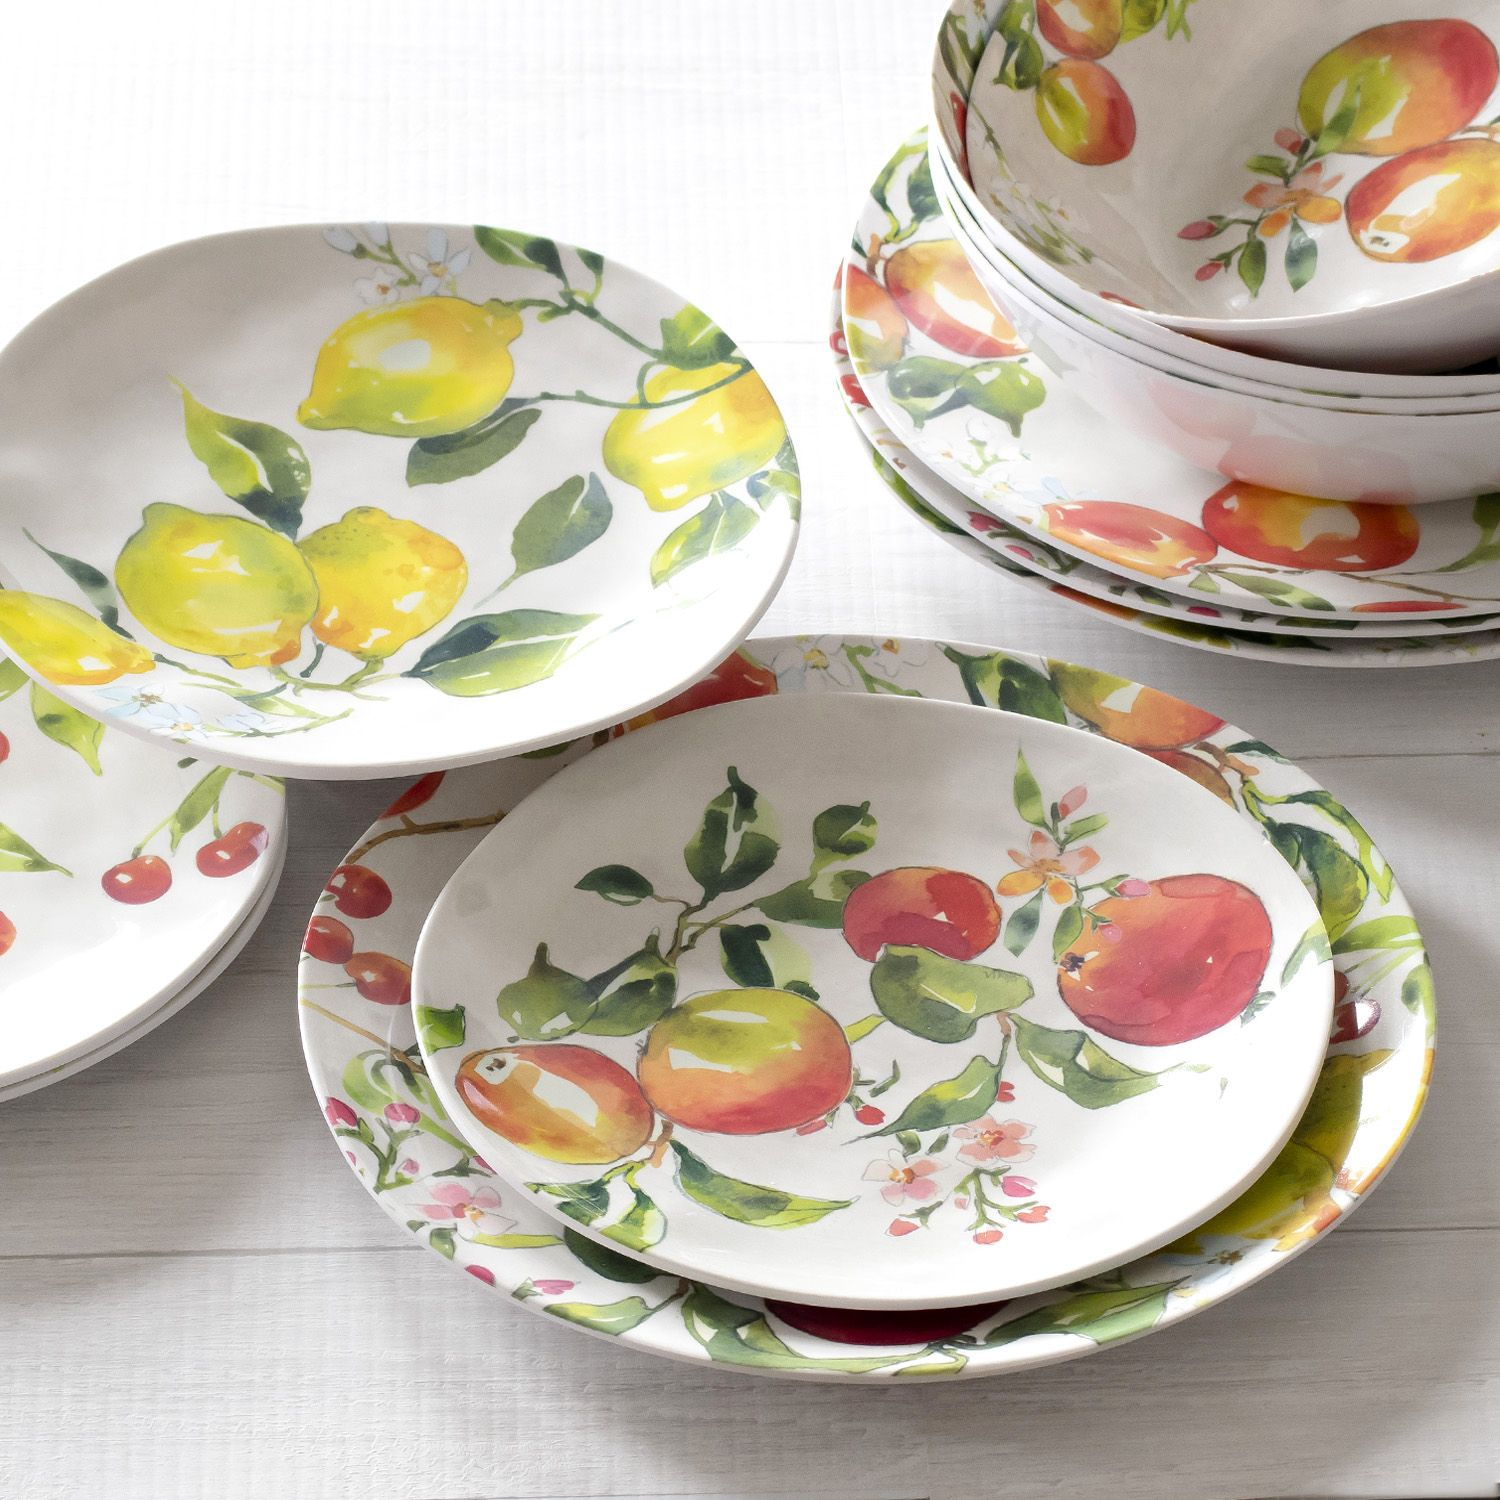 c9b901f44c1107c55cd239f518297676 - Better Homes And Gardens Heritage 12 Piece Dinnerware Set